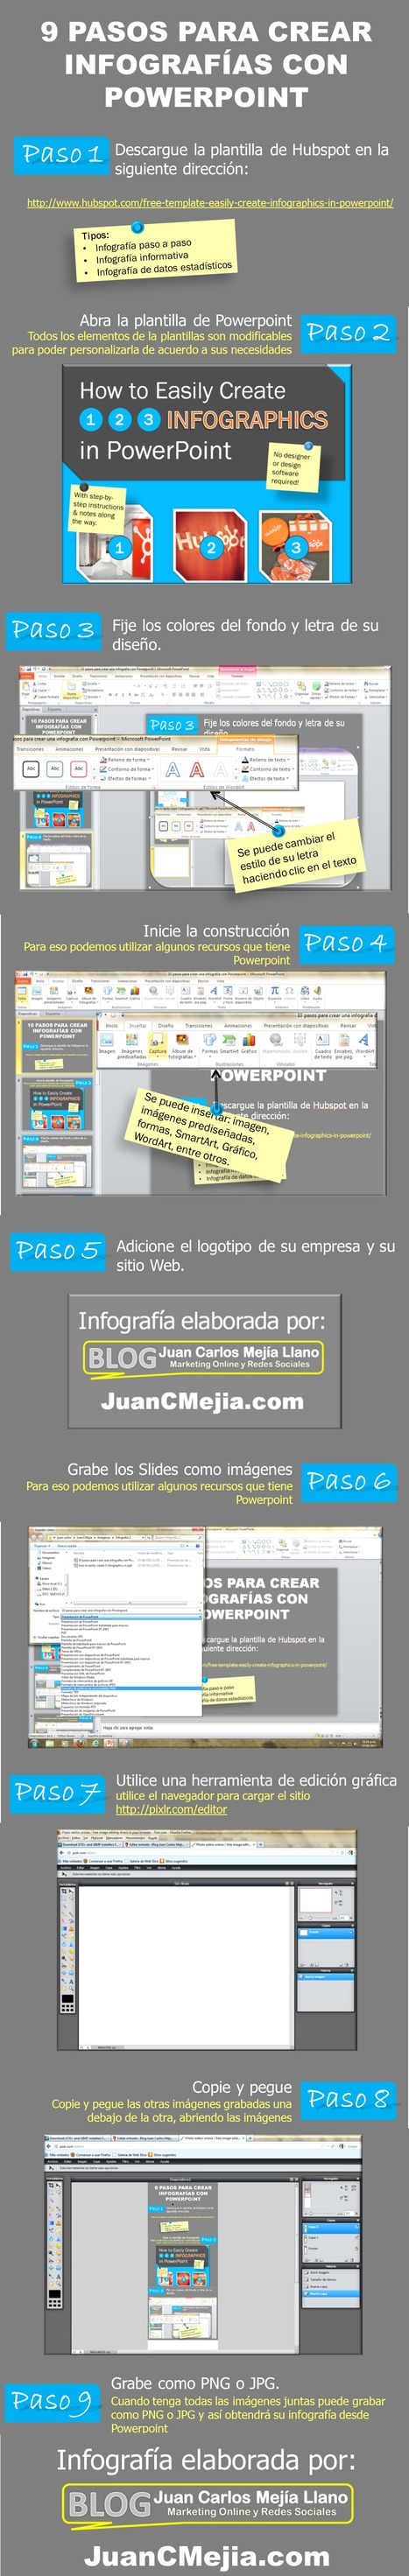 9 pasos para crear infografías con PowerPoint | Edumorfosis.it | Scoop.it